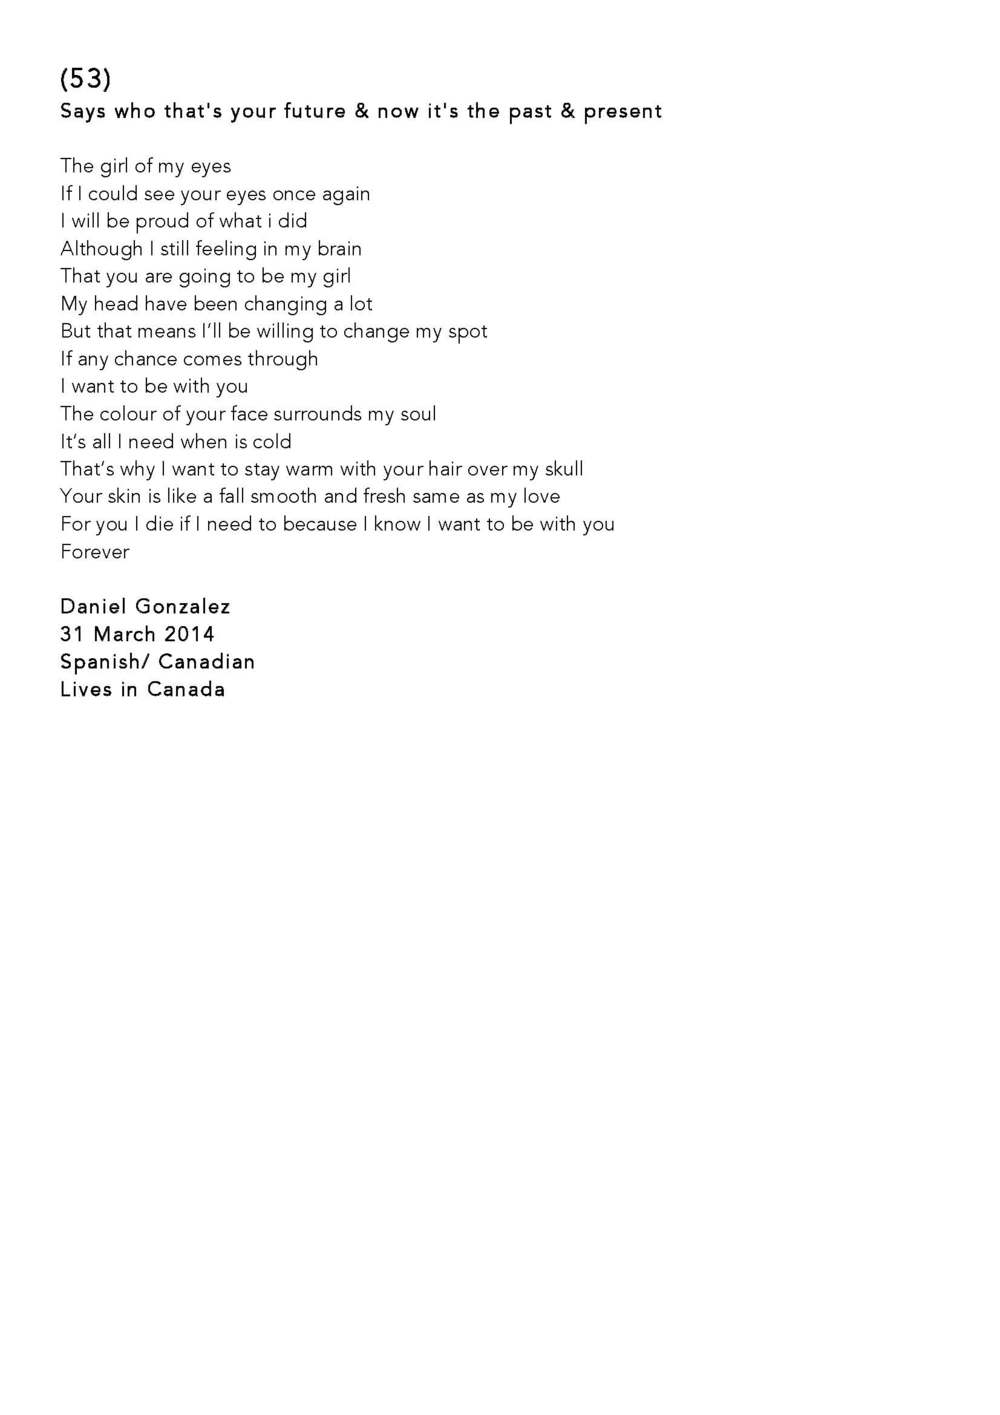 Poetry Collection - Everyone can Poetry_March 2014_Page_53.jpg